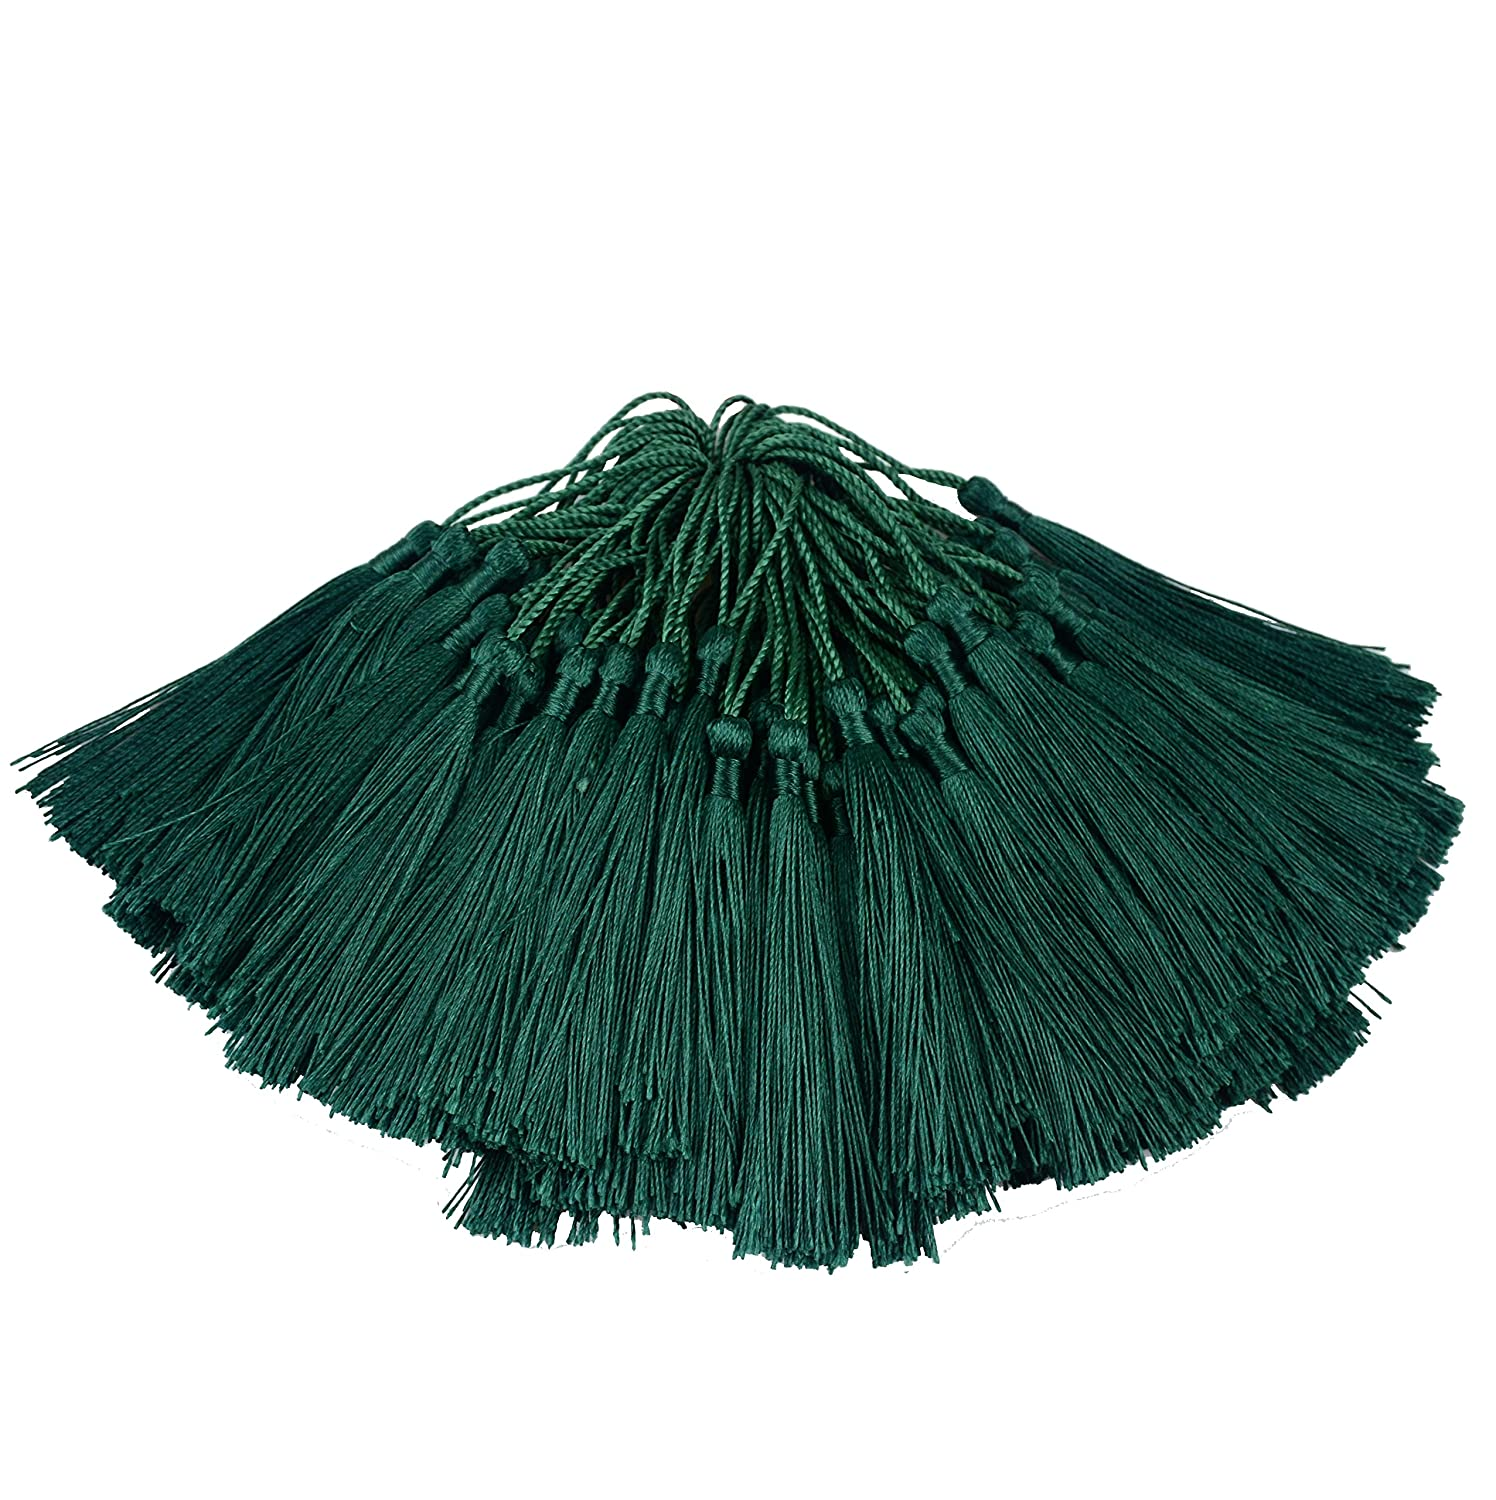 100pcs 13cm/5 Inch Silky Floss Bookmark Tassels with 2-Inch Cord Loop and Small Chinese Knot for Jewelry Making, Souvenir, Bookmarks, DIY Craft Accessory (Dark Green) 91uXVzBylxL